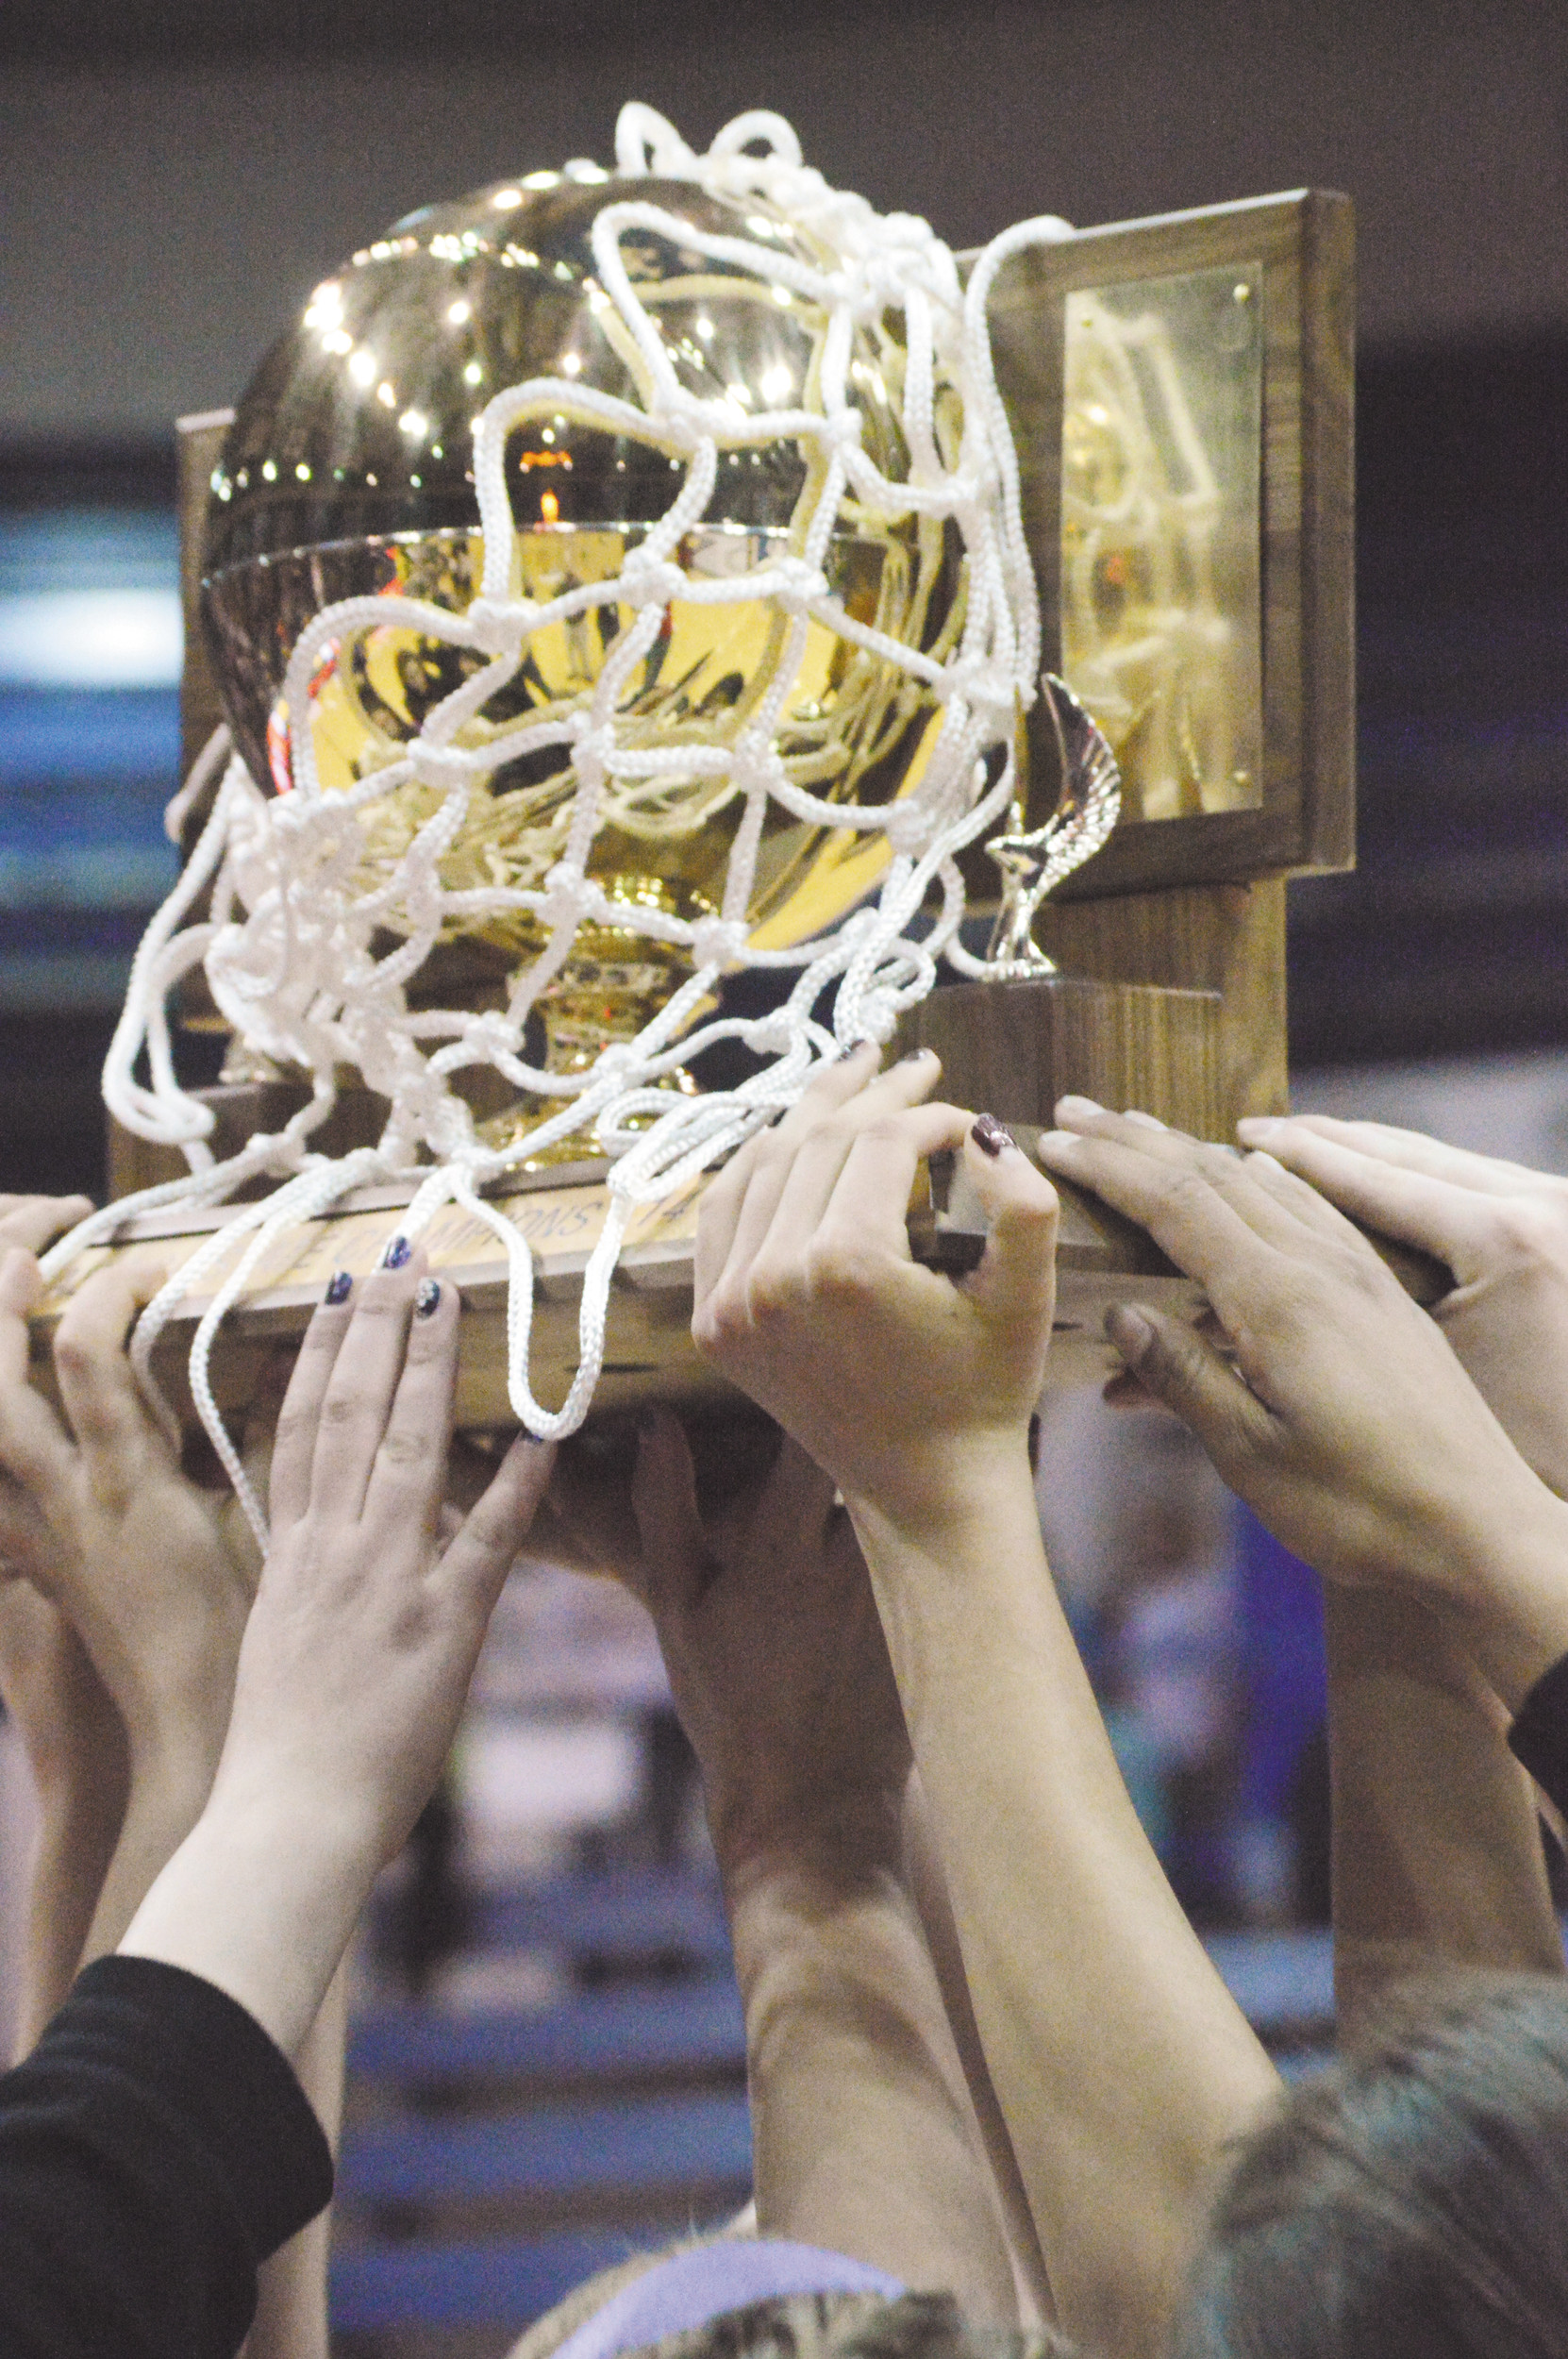 The Holy Family girls team hold up the trophy after winning the championship game of the 3A Girls Basketball State Tournament against Pagosa Springs March 15 at Air Force Academy's Clune Arena.